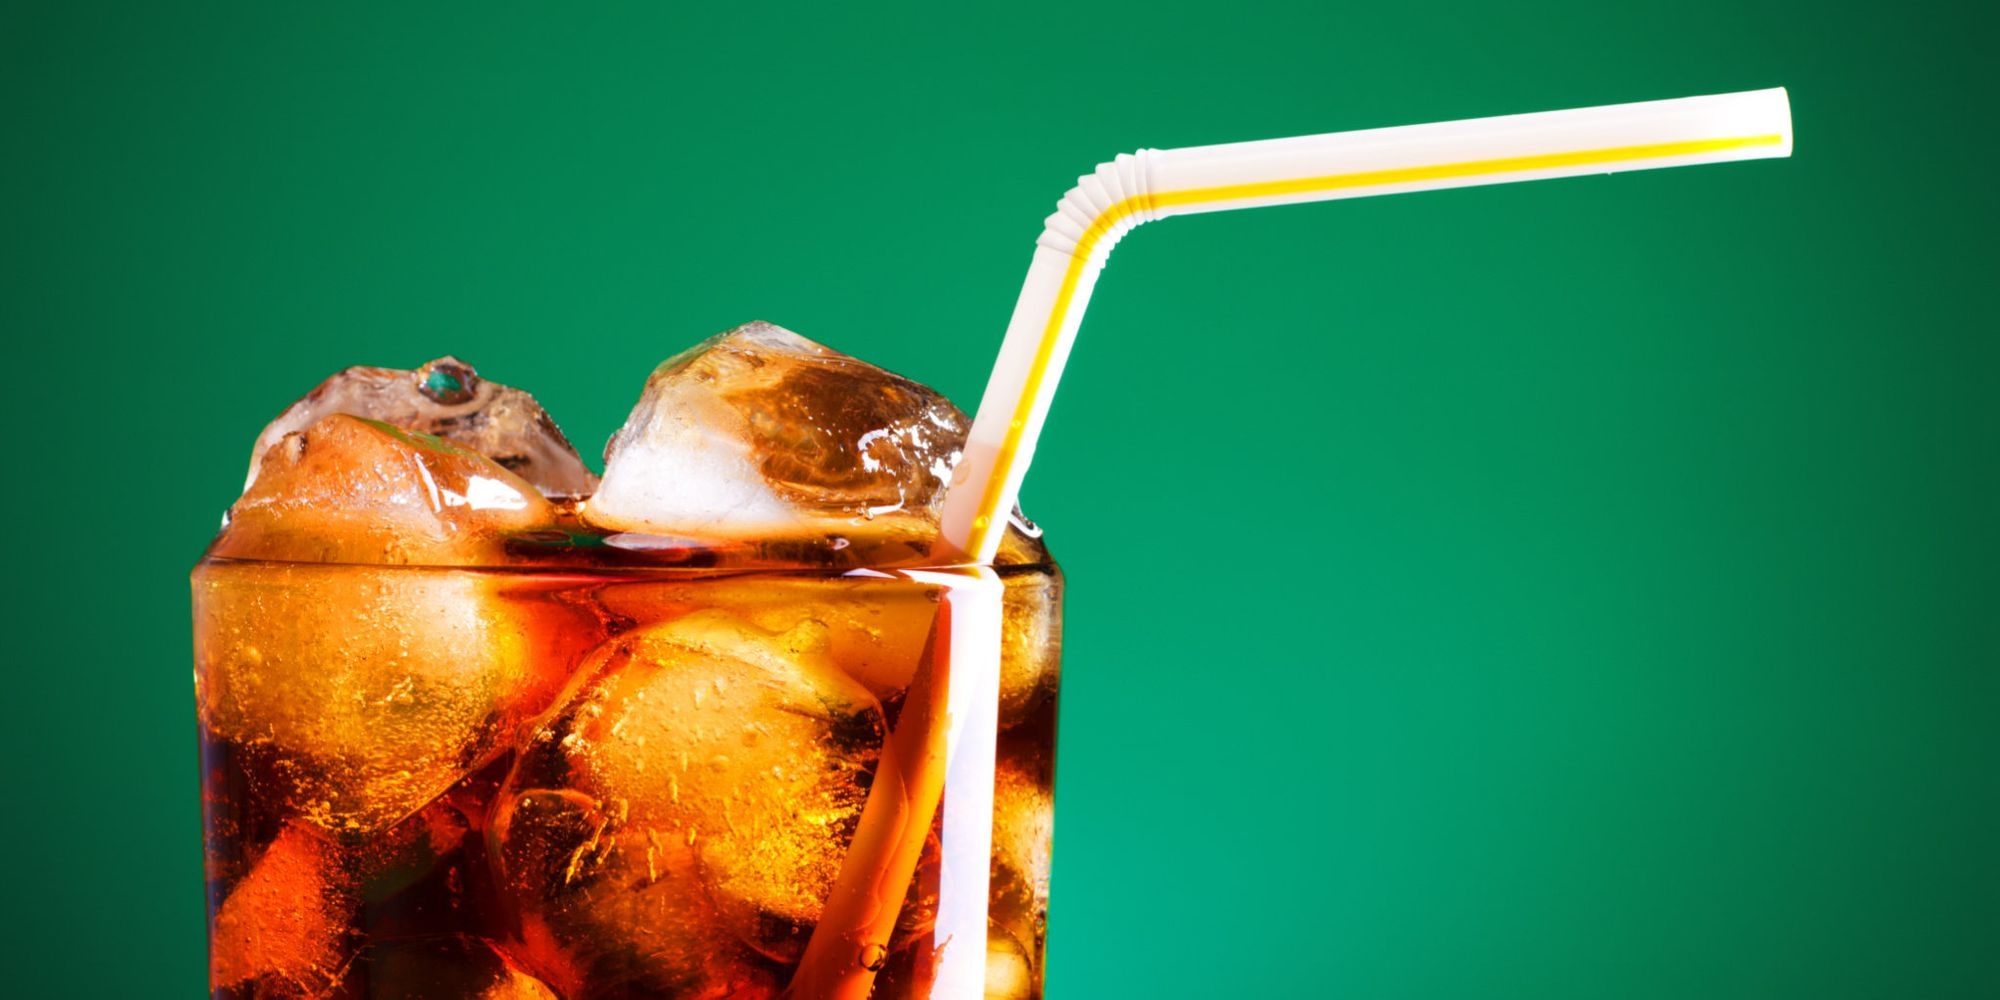 WHO Says All Countries Should Tax Sugary Drinks To Curb Obesity